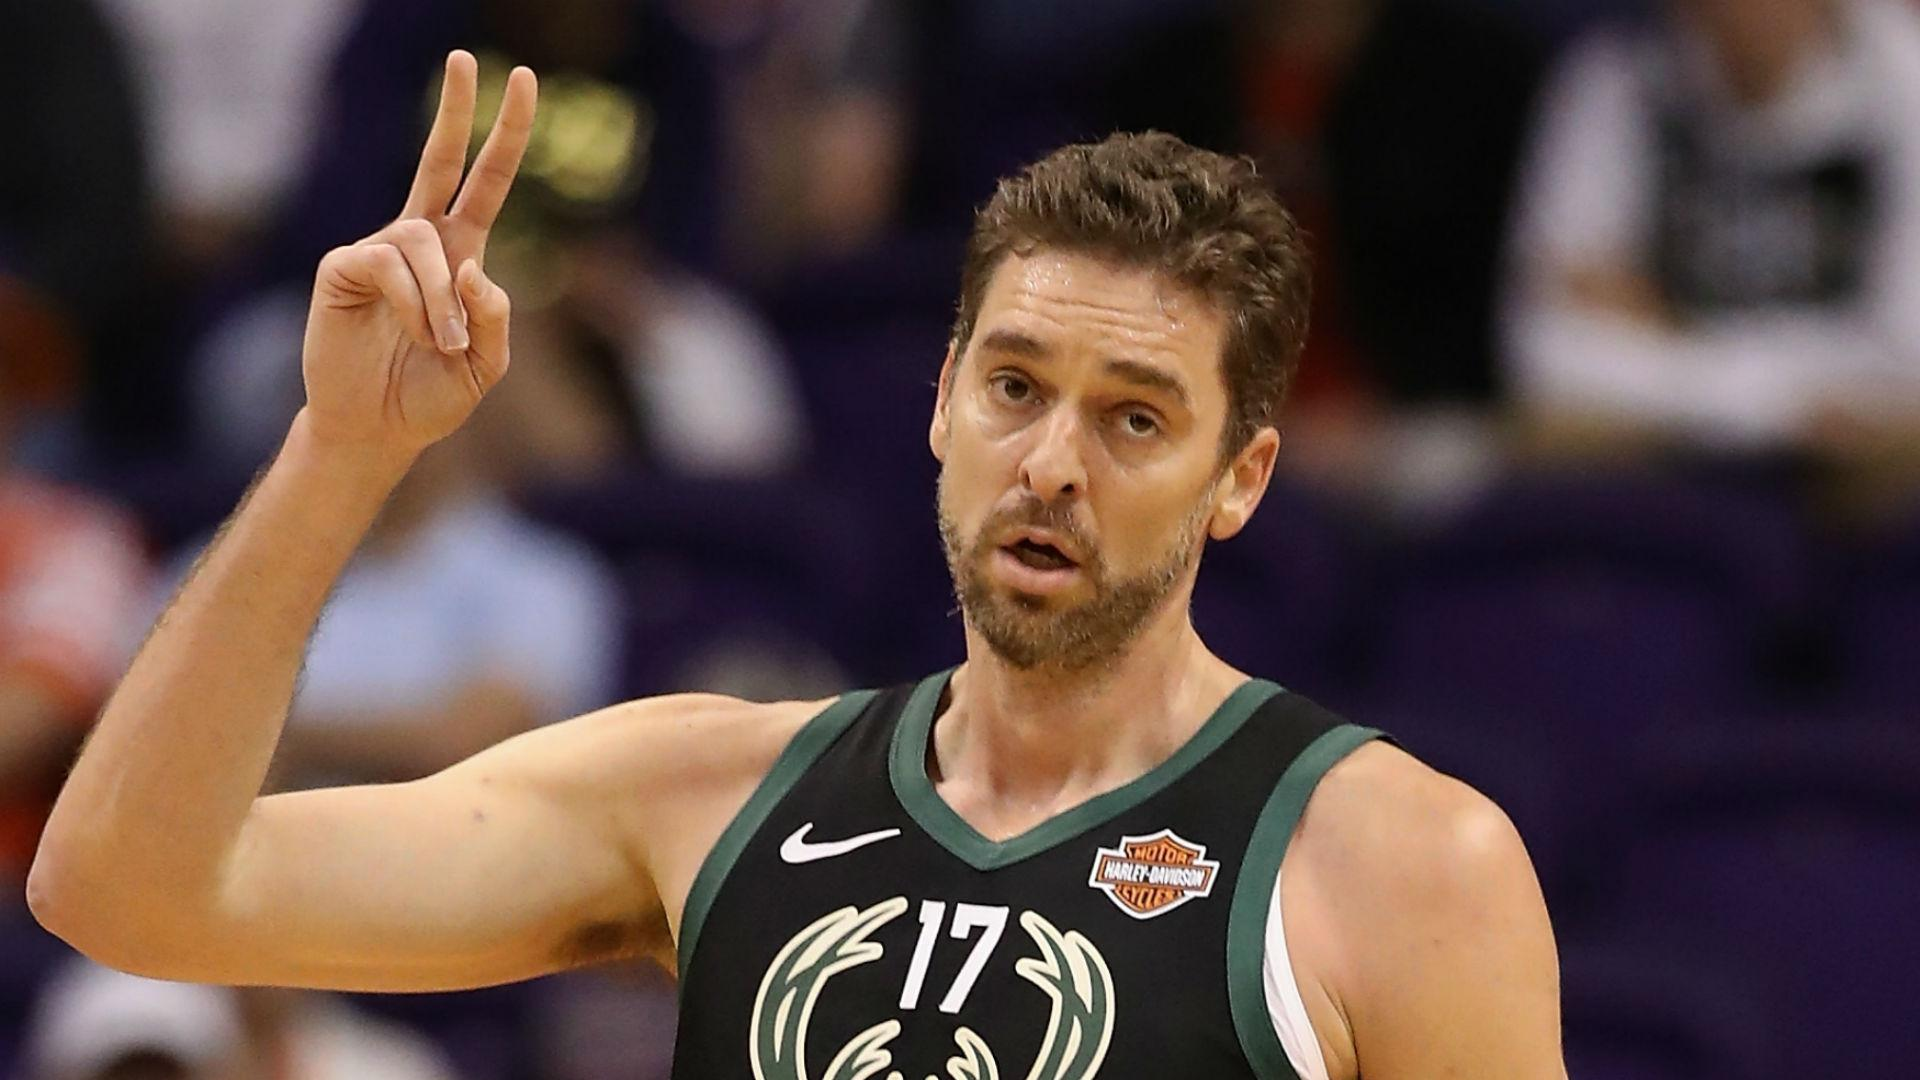 Report: Bucks' Gasol (ankle) could miss one month